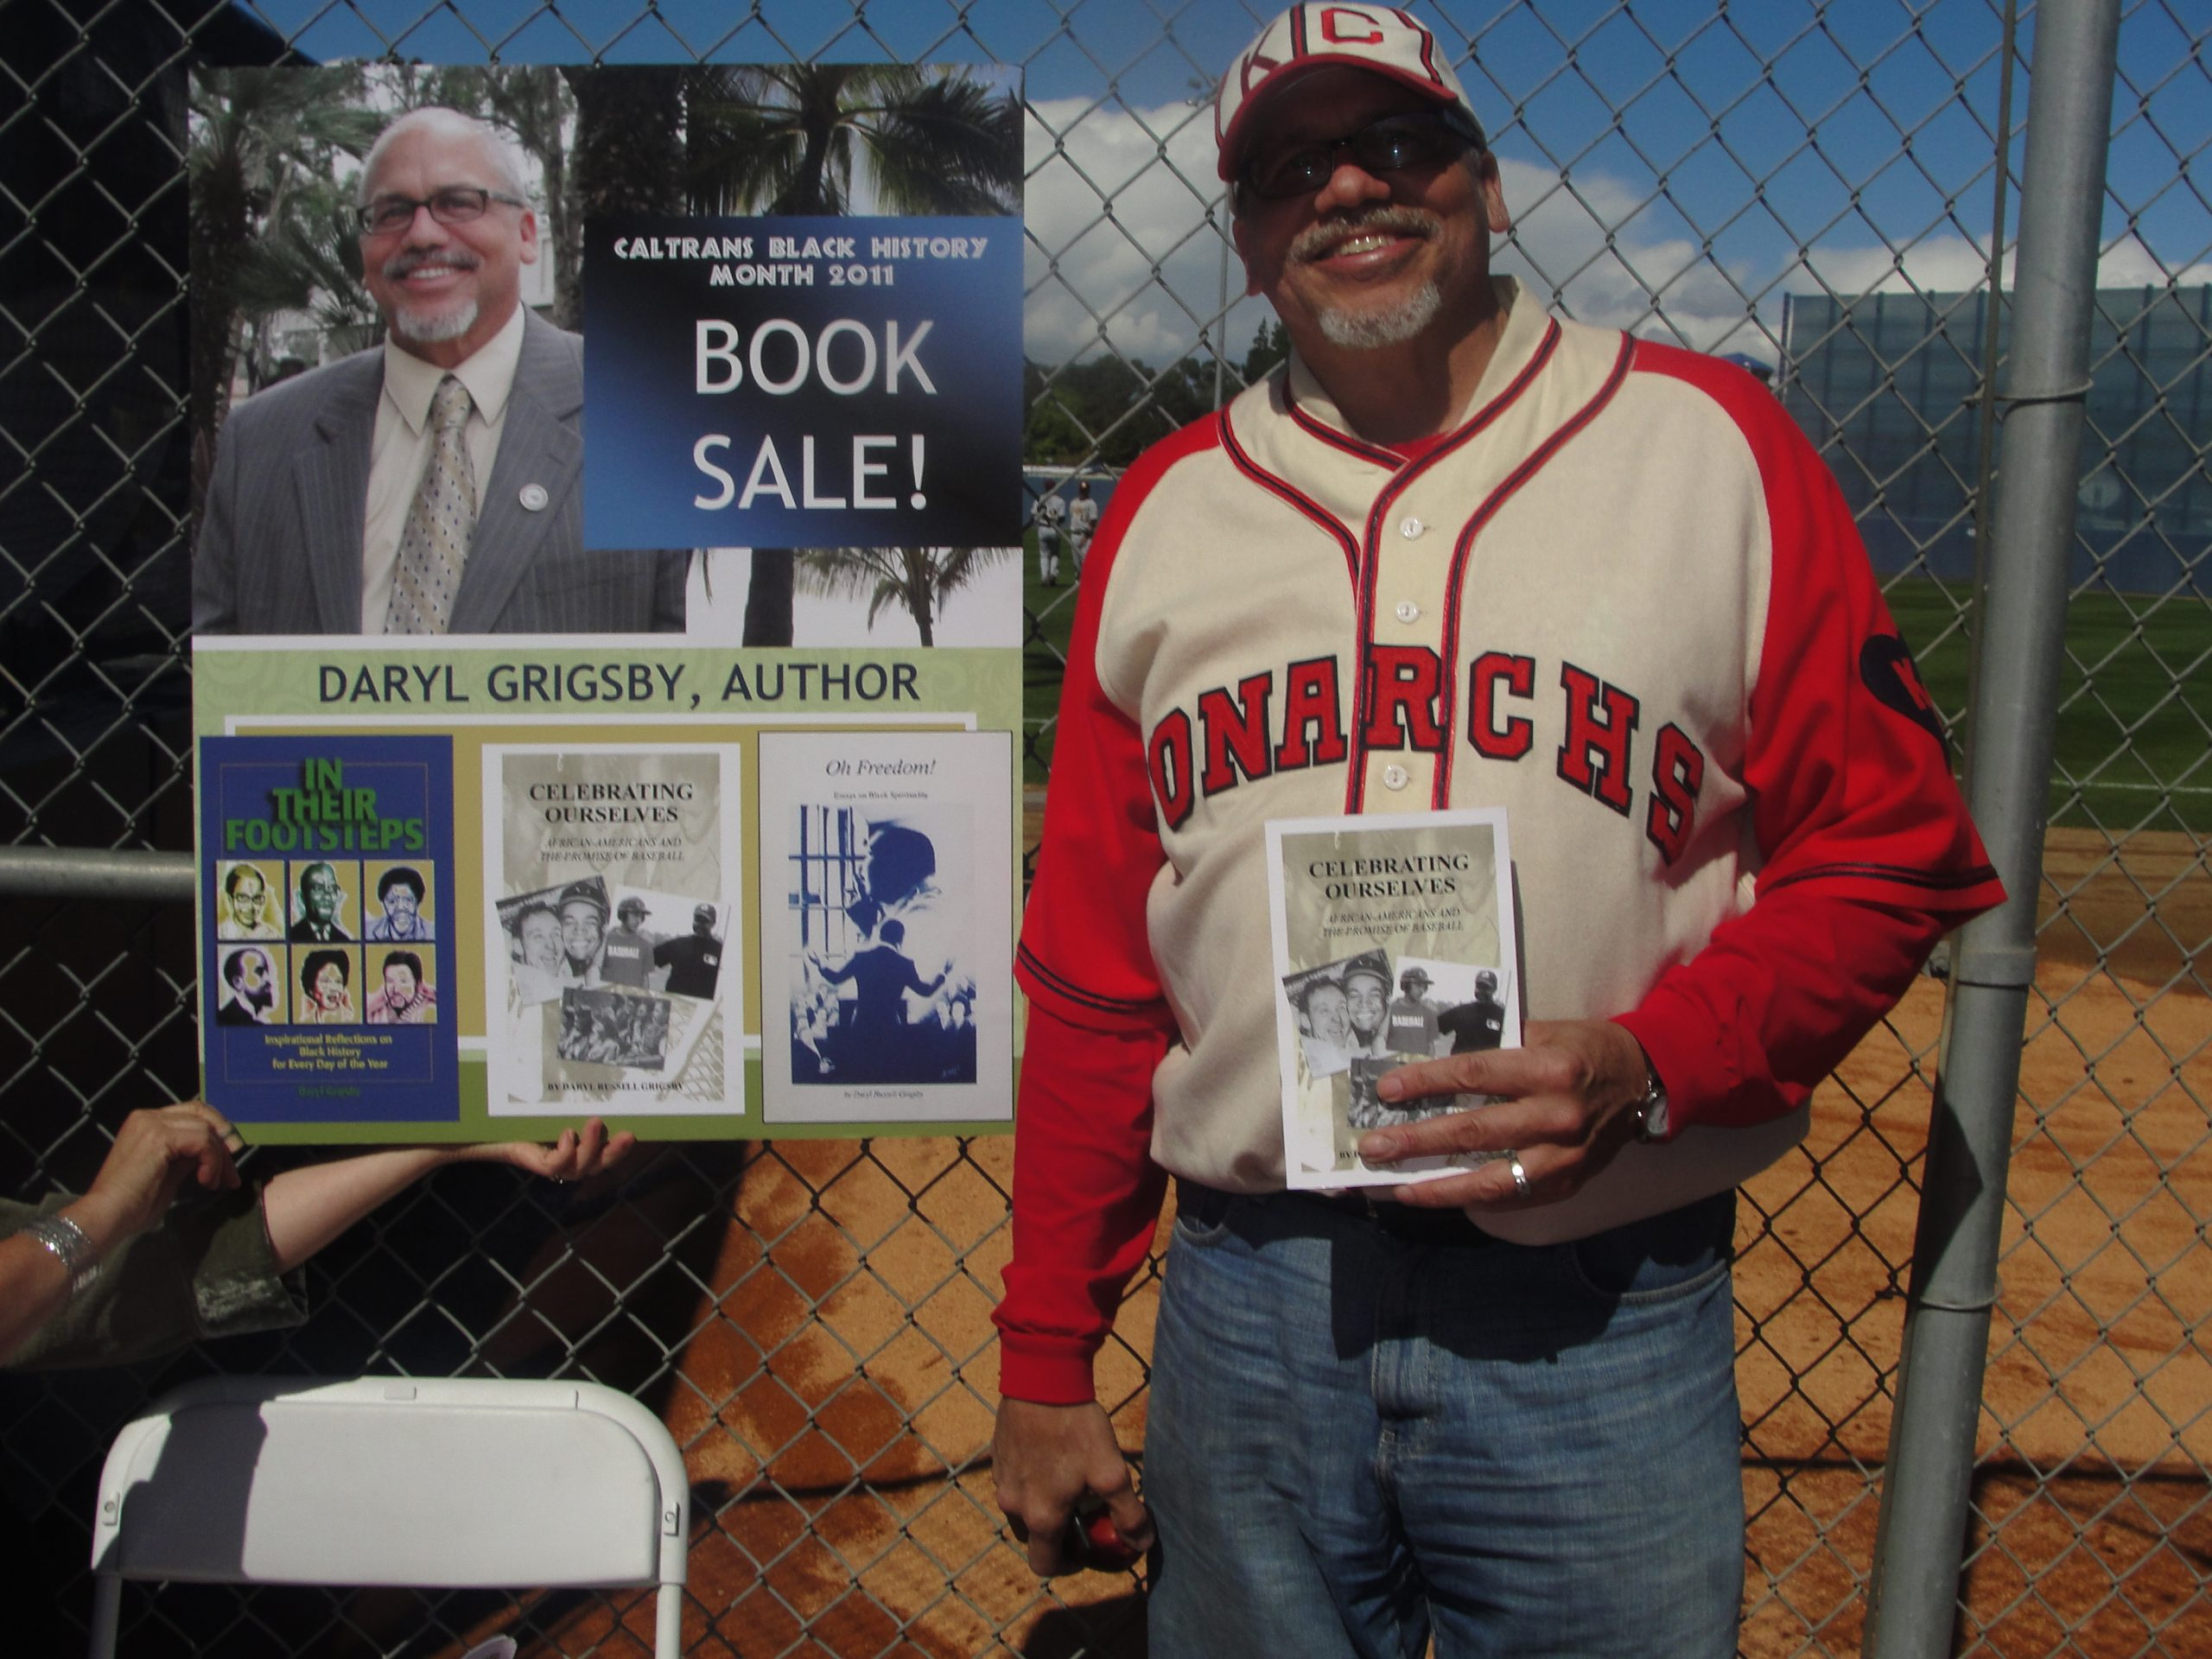 By Dennis J. Freeman When Major League Baseballs annual Urban Invitational came to town a couple of months ago, author...